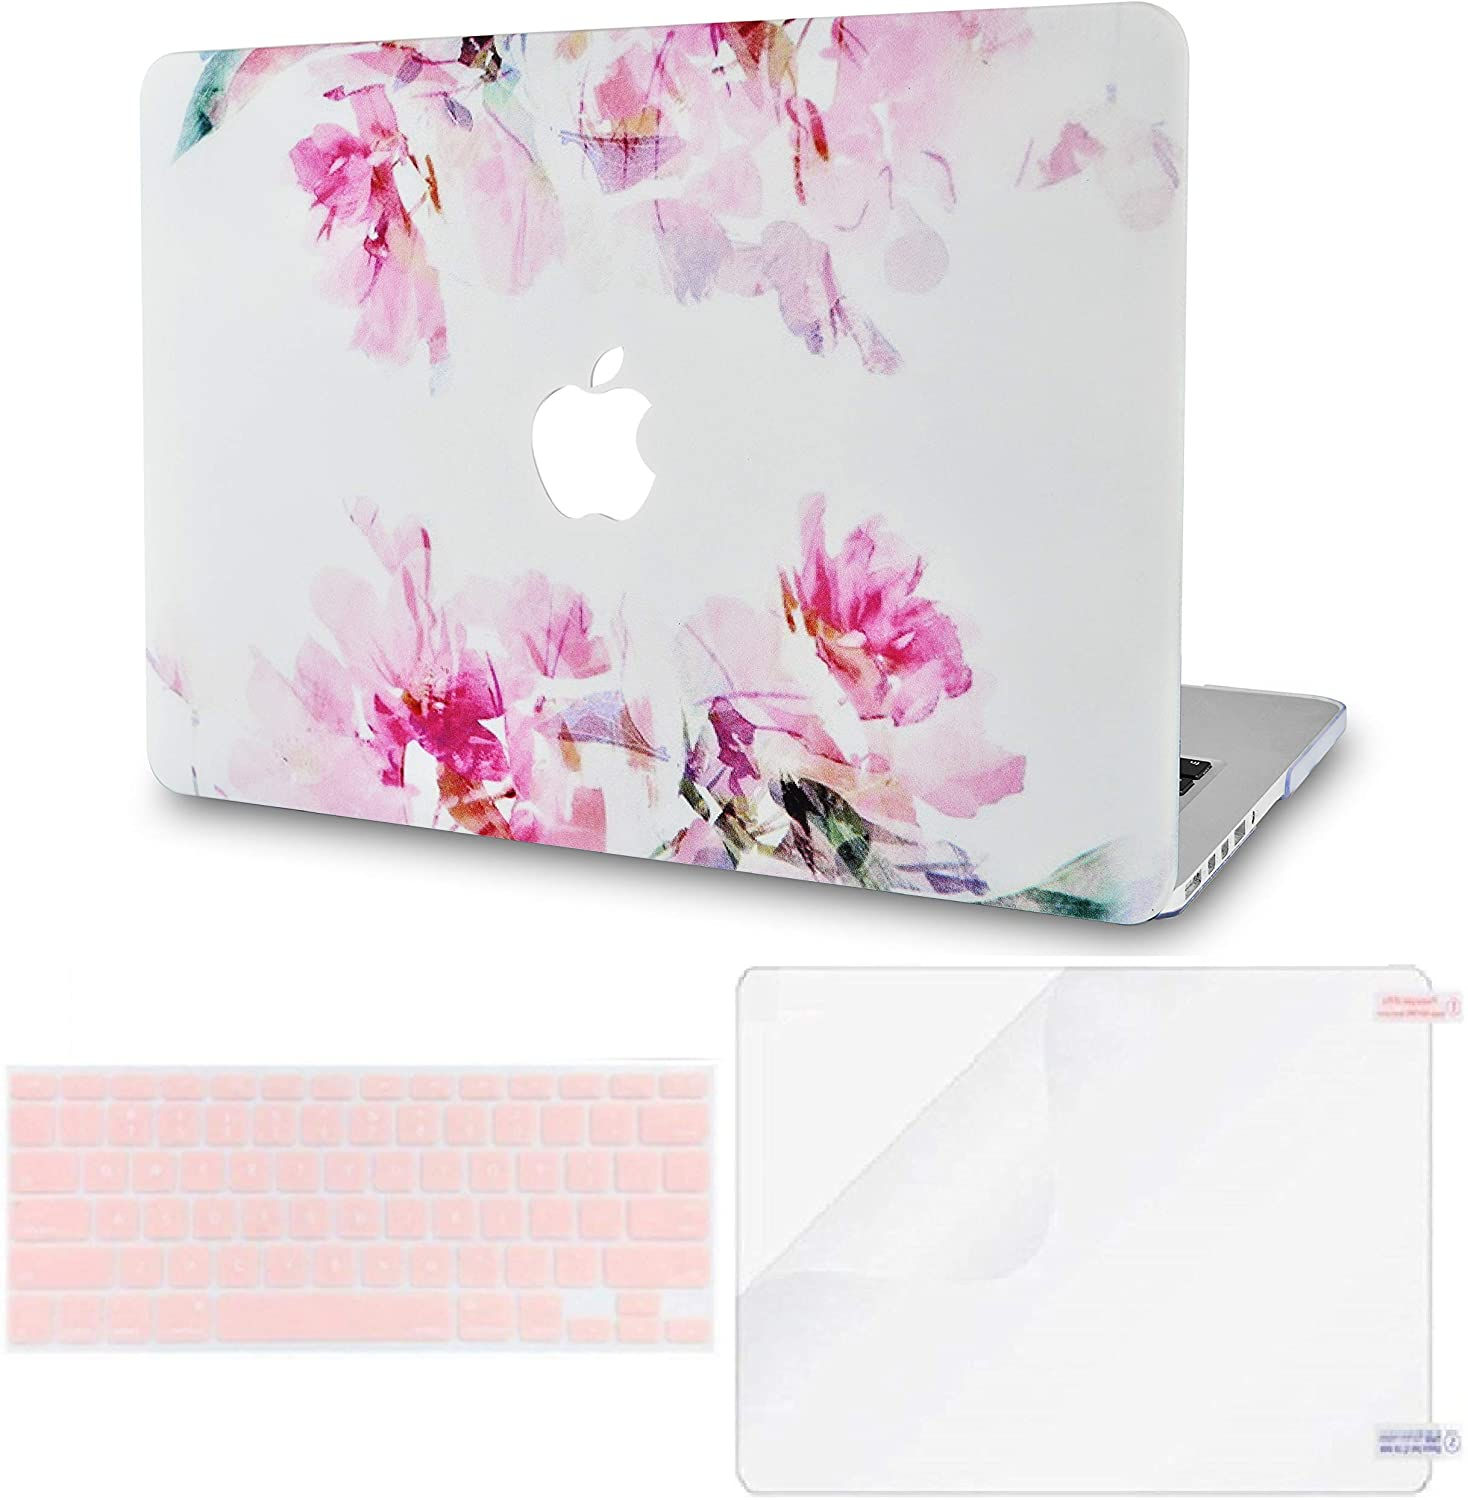 LuvCase 3 in 1 LaptopCase forMacBookAir 13 Inch A1466 / A1369 (No Touch ID)(2010-2017) HardShell Cover, Keyboard Cover & Screen Protector(Flower 22)